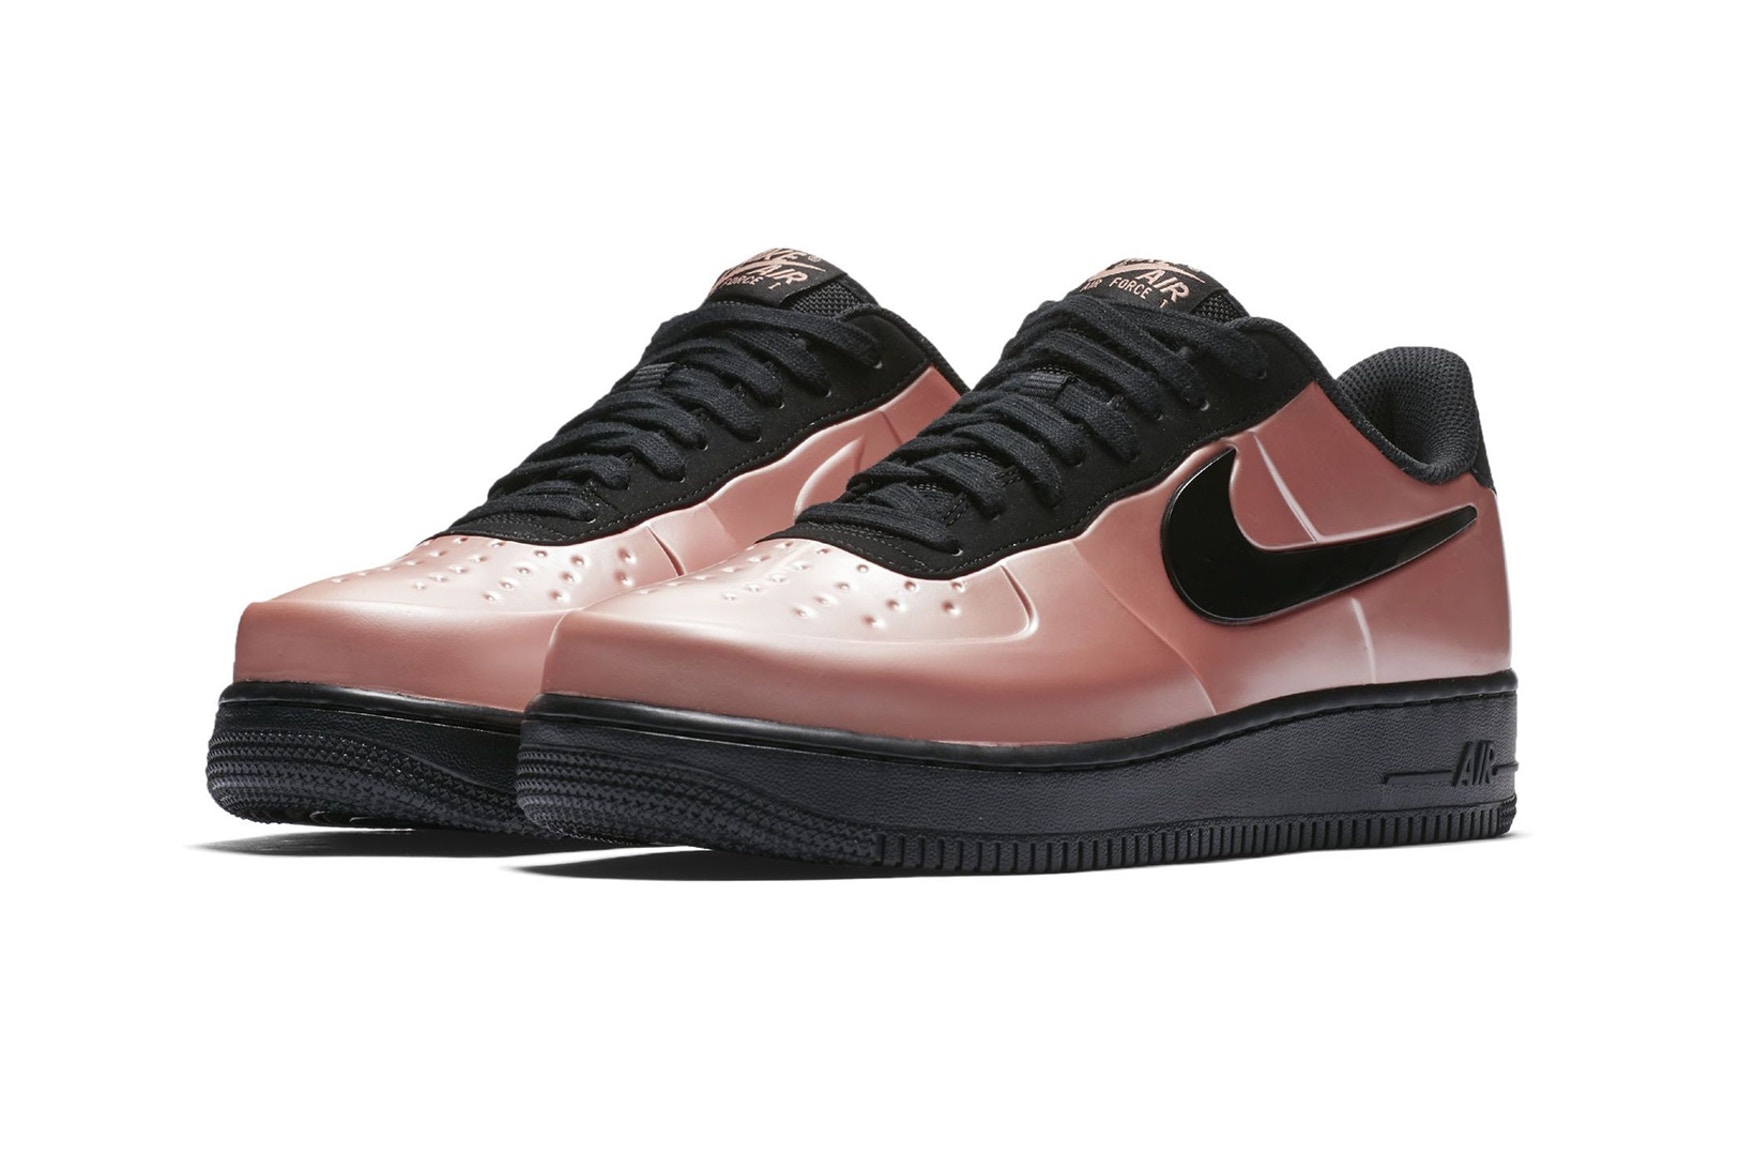 Nike's Air Force 1 Foamposite Makes a Comeback in Metallic Pink